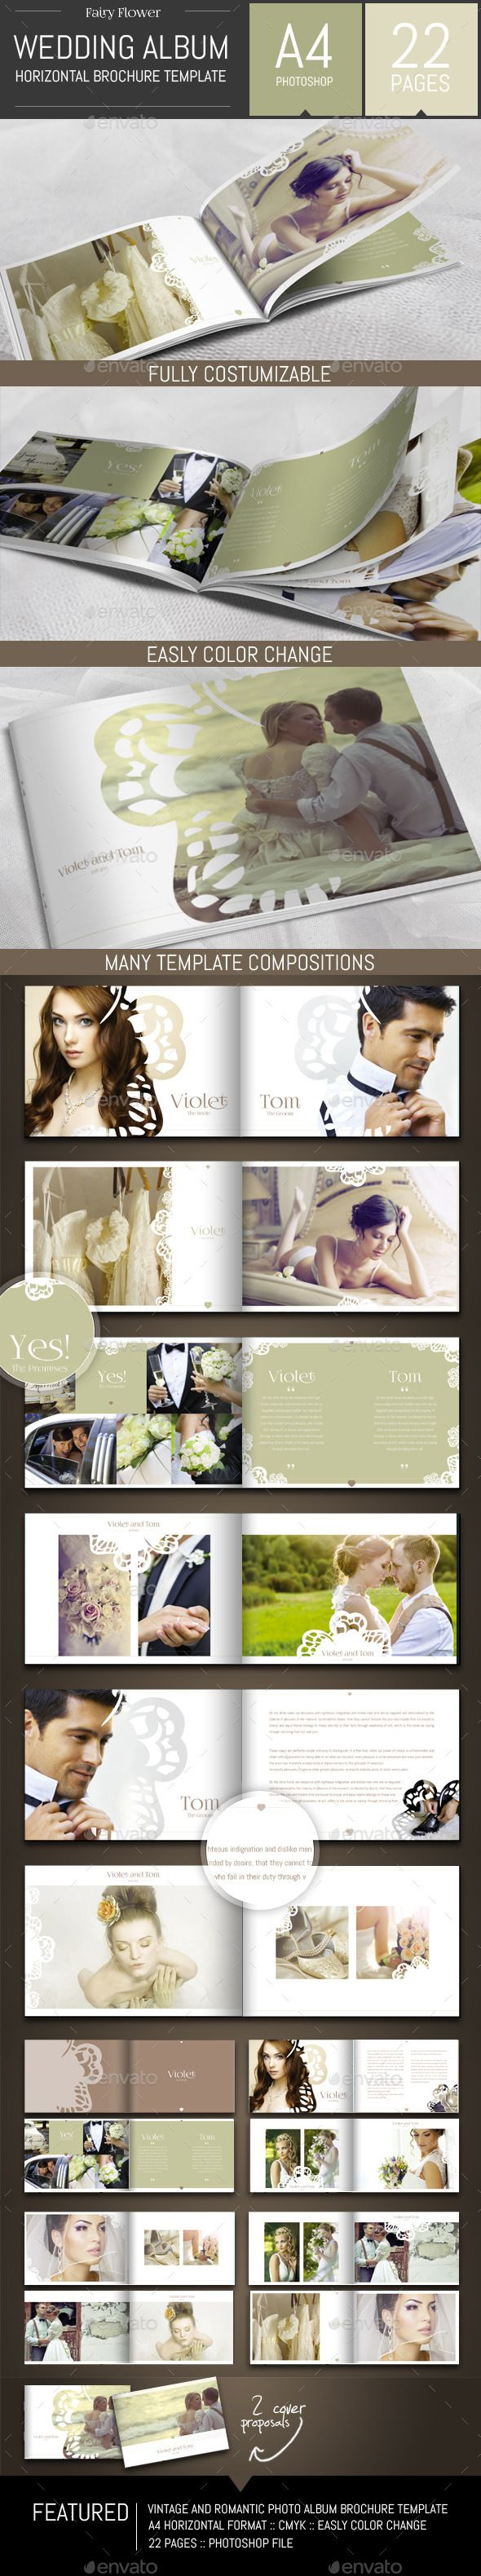 Wedding Photo Album Horizontal Brochure Template - Photo Albums Print Templates